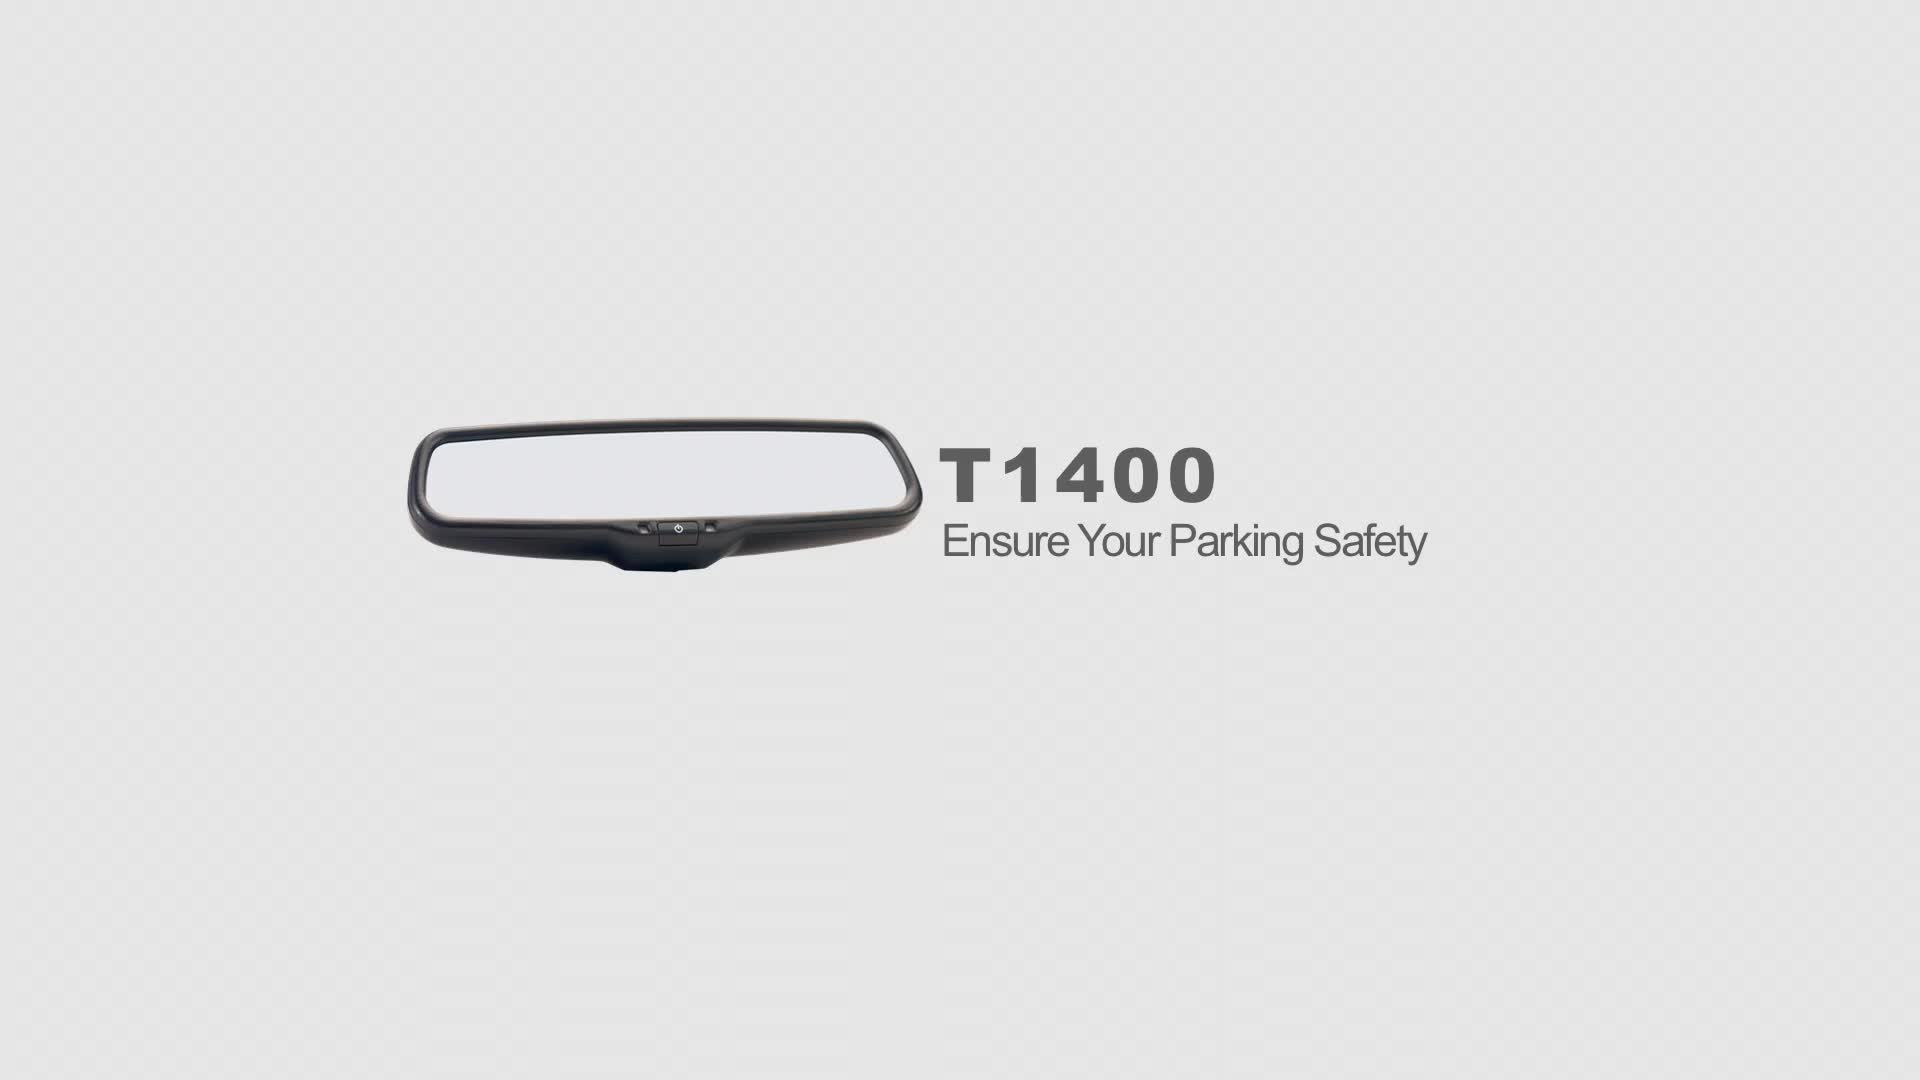 Auto-adjust brightness car rear view monitor